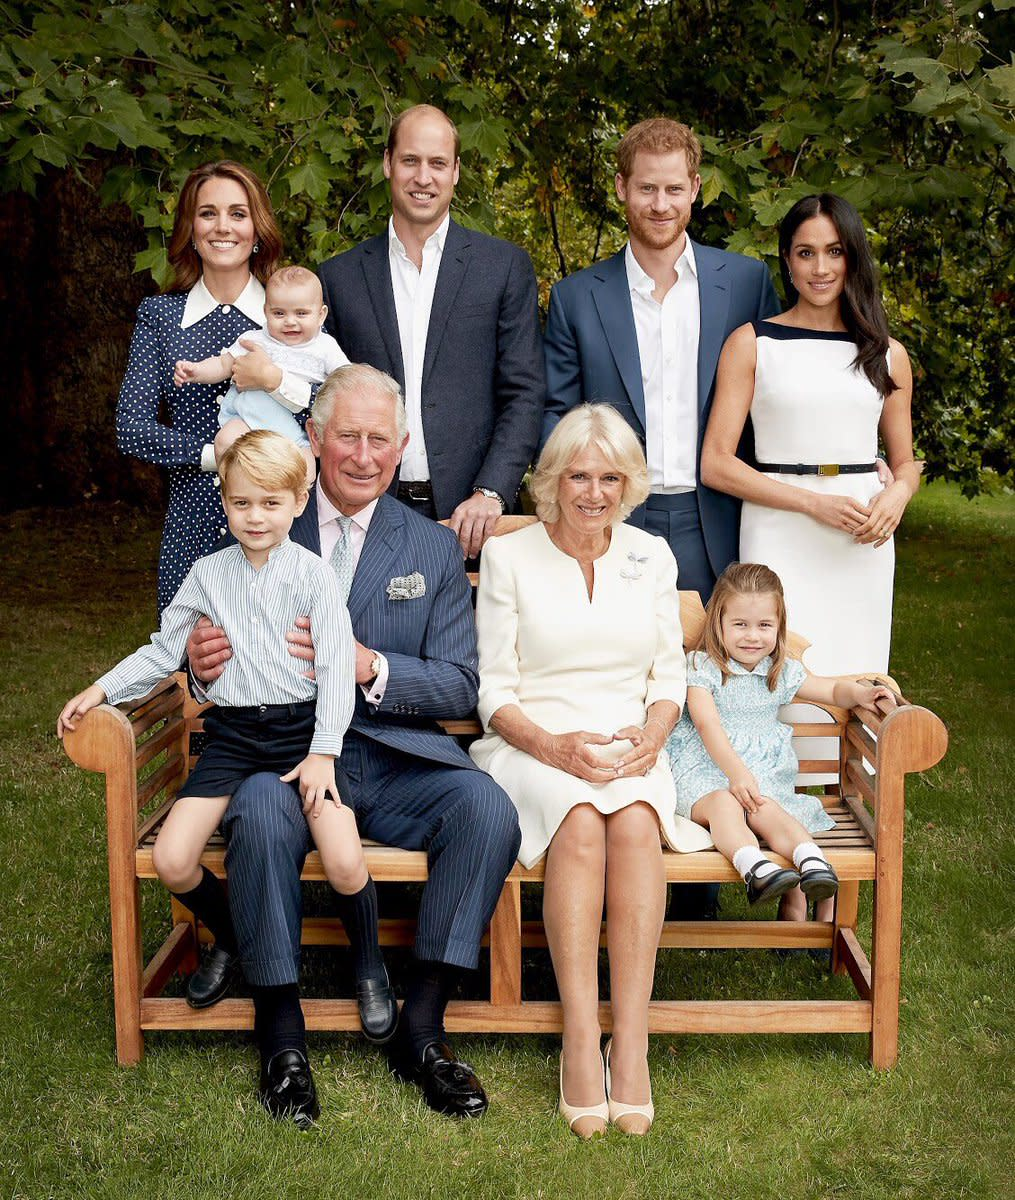 The Royal Family in an official portrait to celebrate Prince Charles's 70th birthday. Photo: Chris Jackson/Courtesy of Kensington Palace/@kensingtonroyal/Instagram